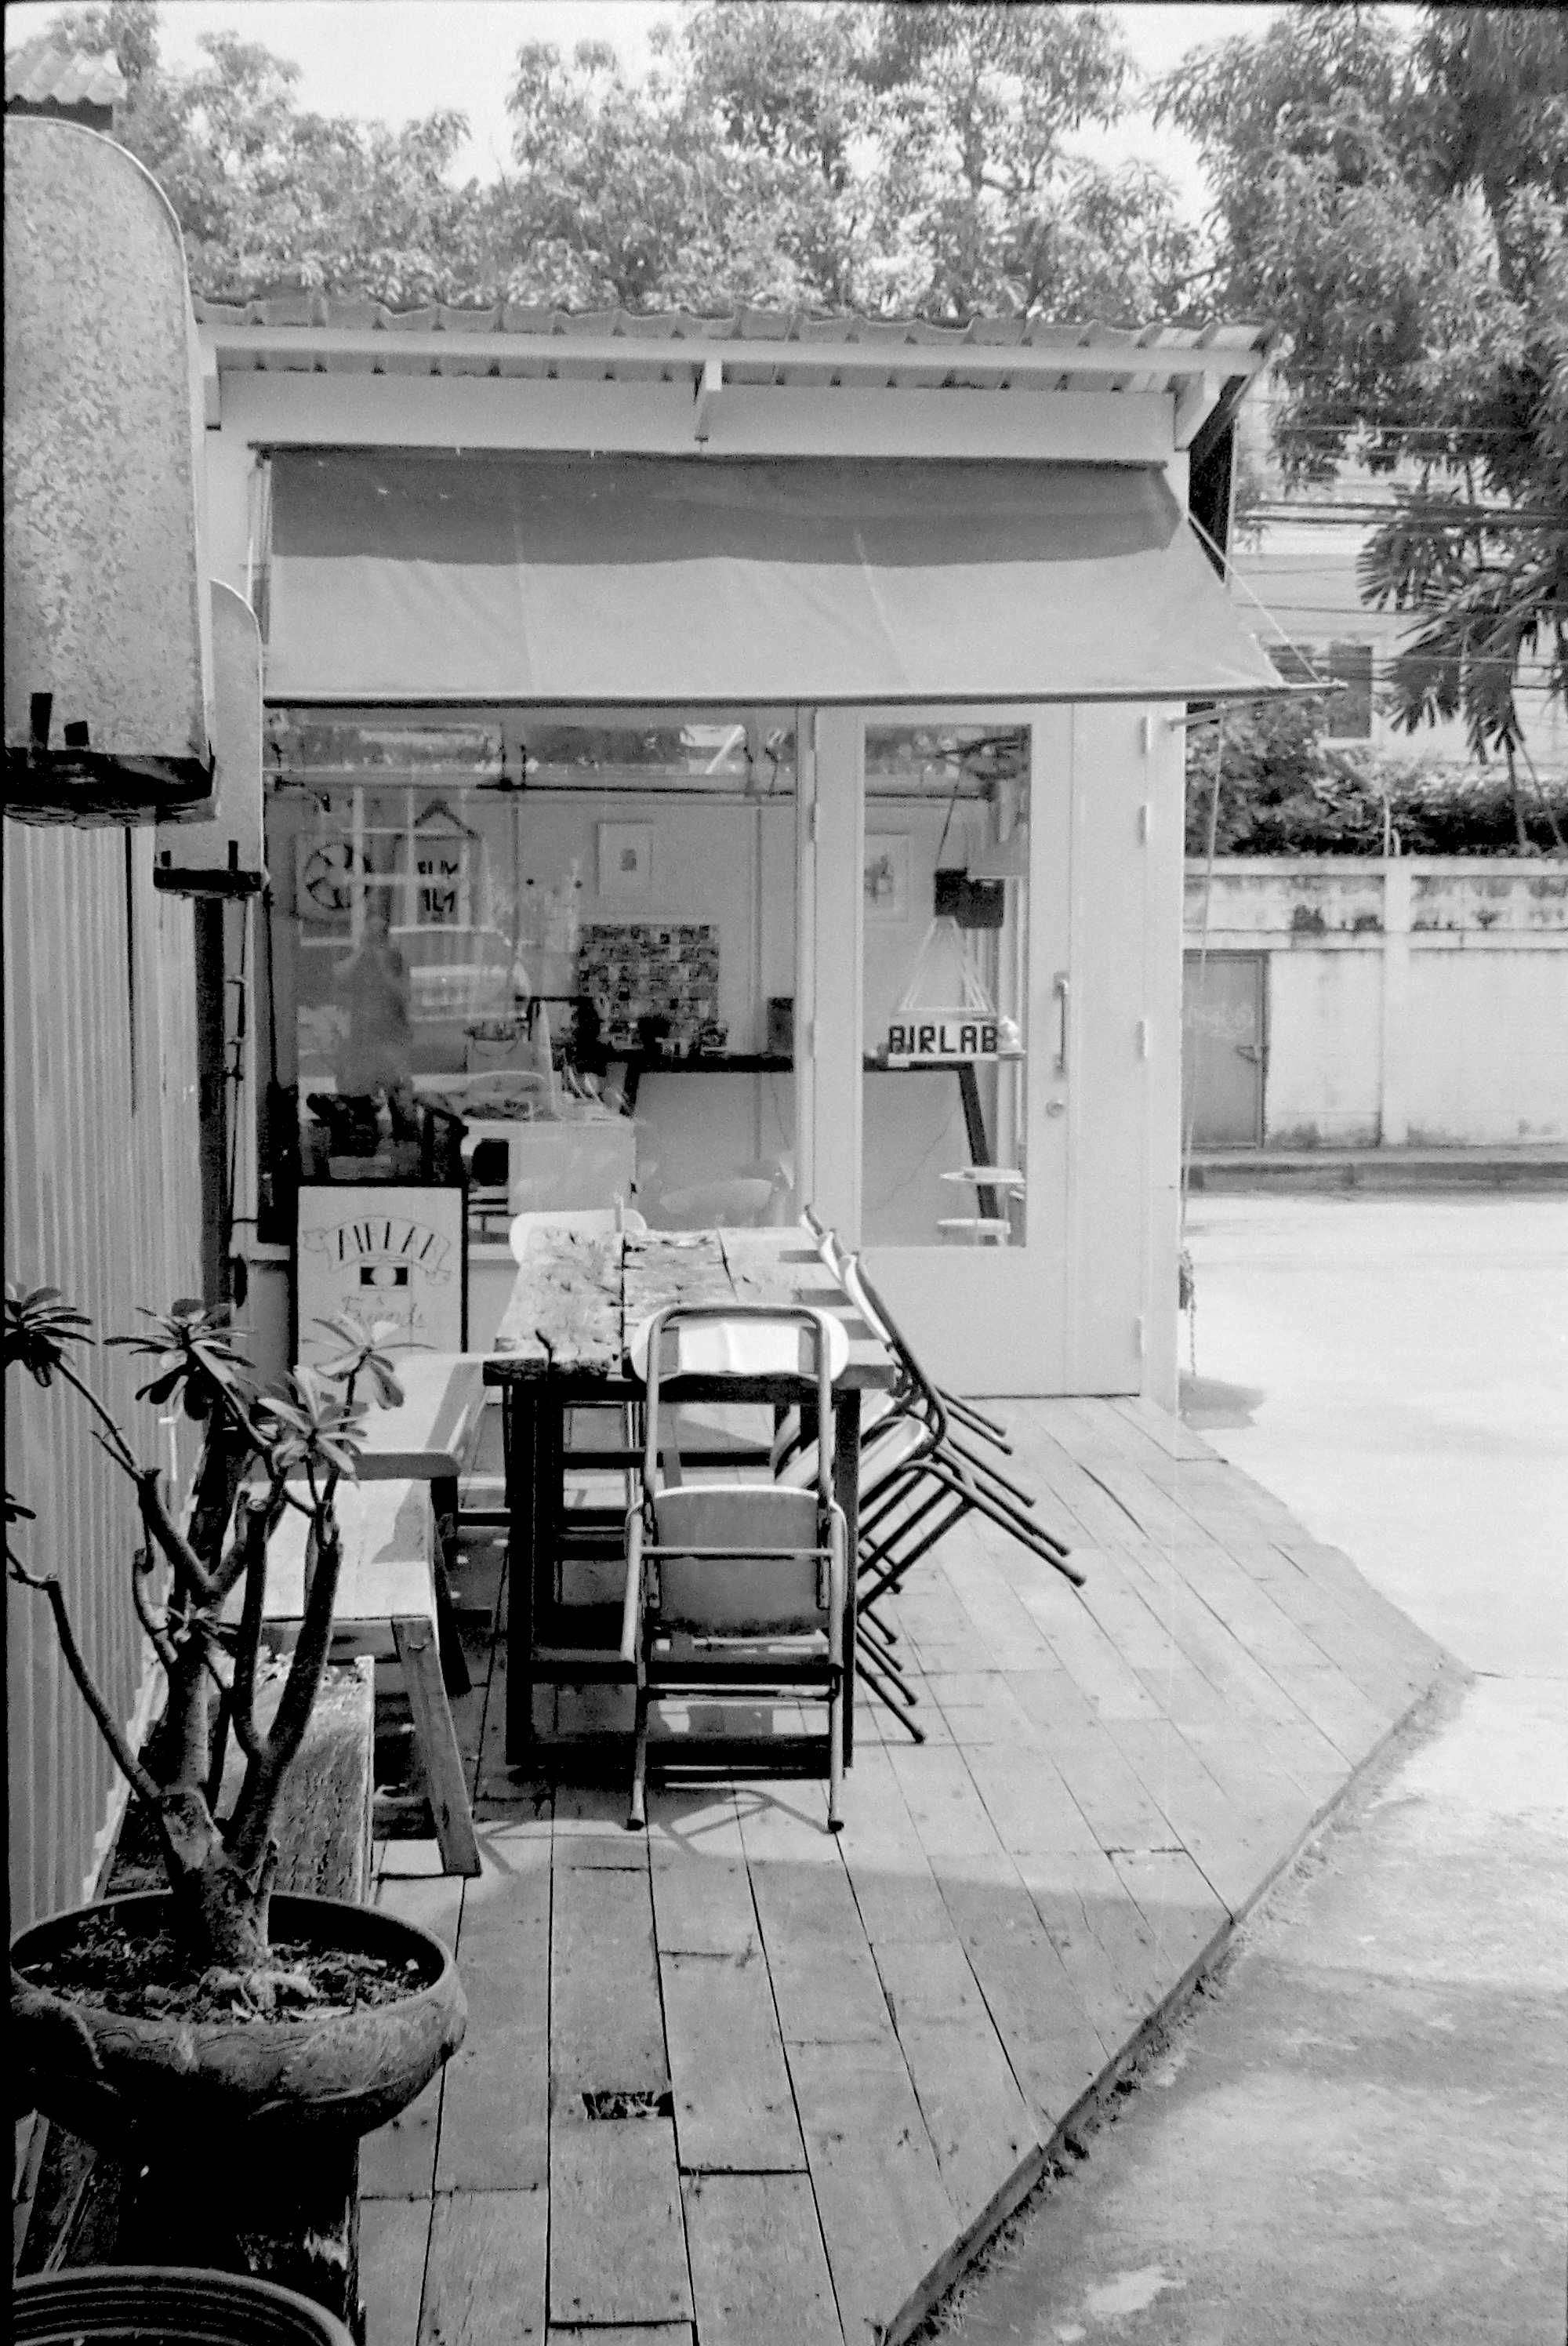 Chromacomaphoto bangkok airlab film photography tri x iso 400 leica m2 summicron rigid super angulon 21mm 50mm black and white thailand street  (7).JPG